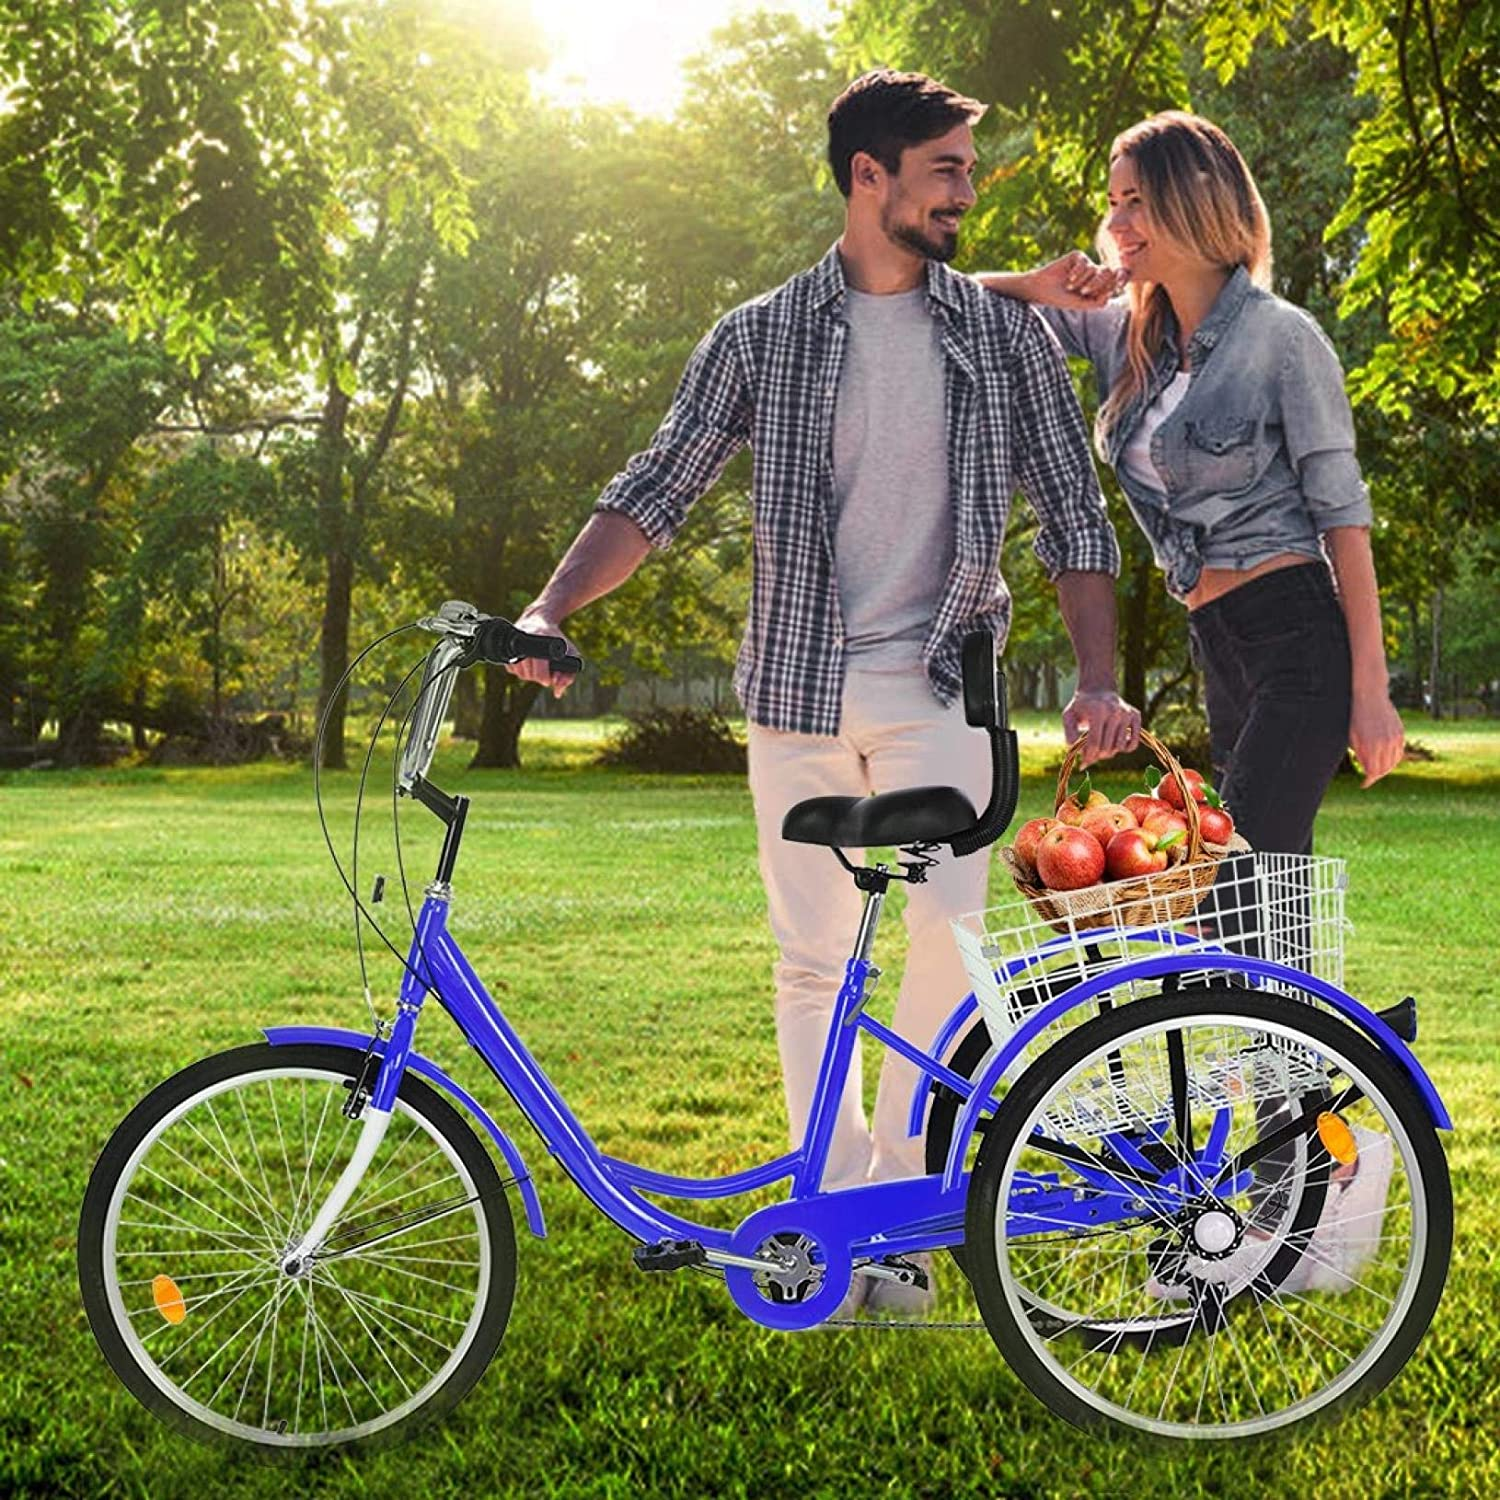 winwintom 【US Fast Shipment】 Adult Tricycle Bike 1//7 Speed 3-Wheel Bikes for Shopping W//Installation Tools,Three-Wheeled Bicycle Cruiser Tricycle w//Shopping Basket for Seniors,Women,Men,Comfort Bikes